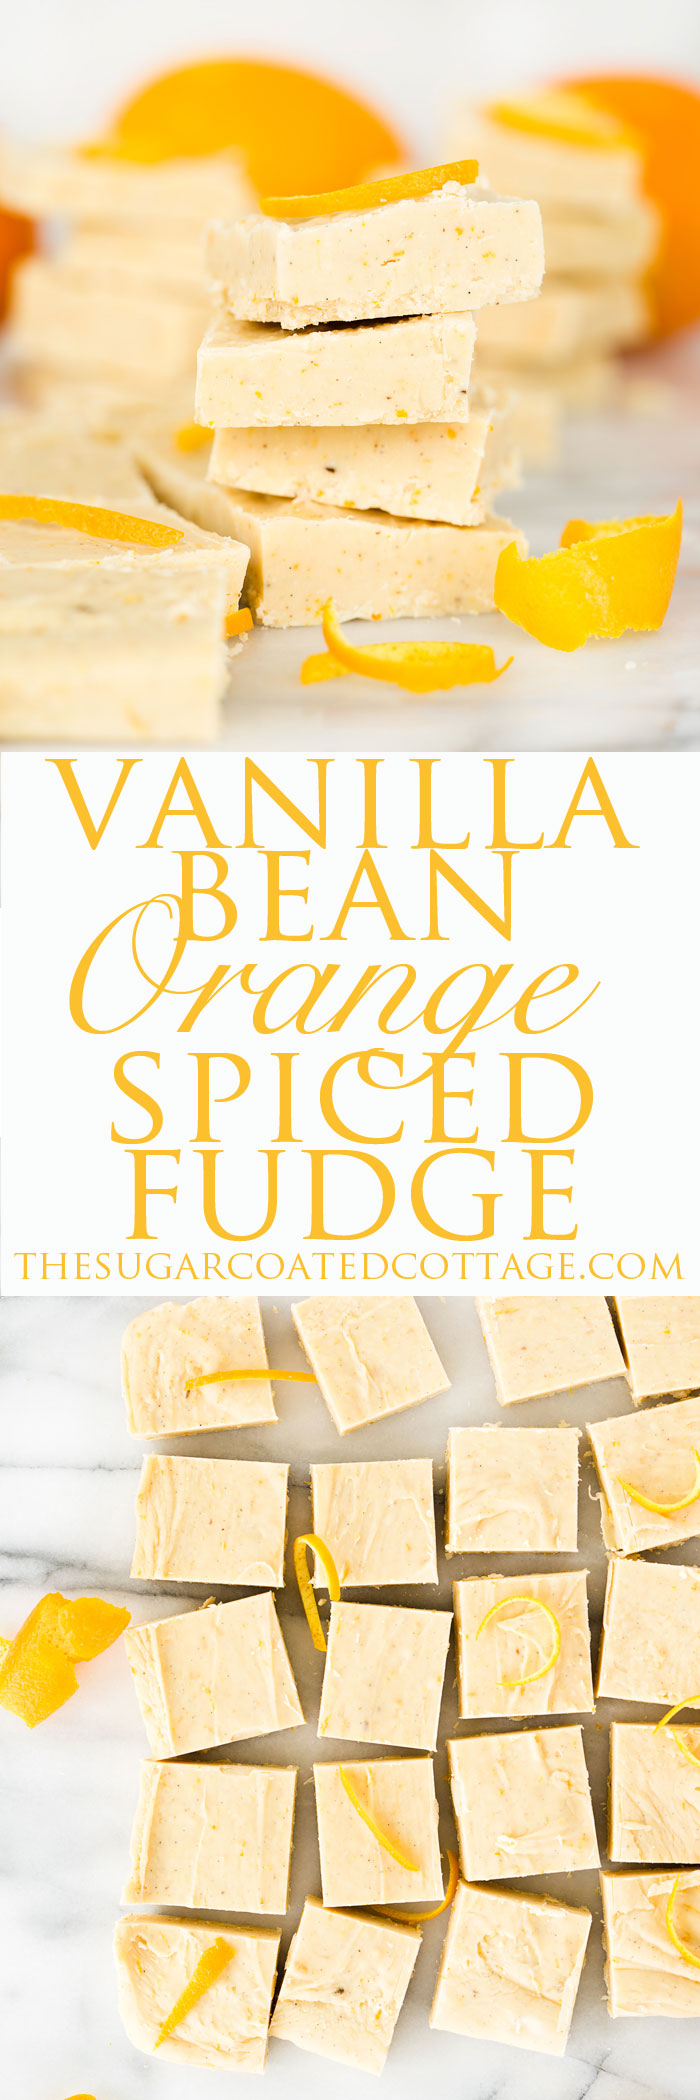 Vanilla Bean Orange Spice Fudge Recipe. Smooth, creamy, melt in your mouth fudge with the bright freshness of orange and lightly spiced. | thesugarcoatedcottage.com